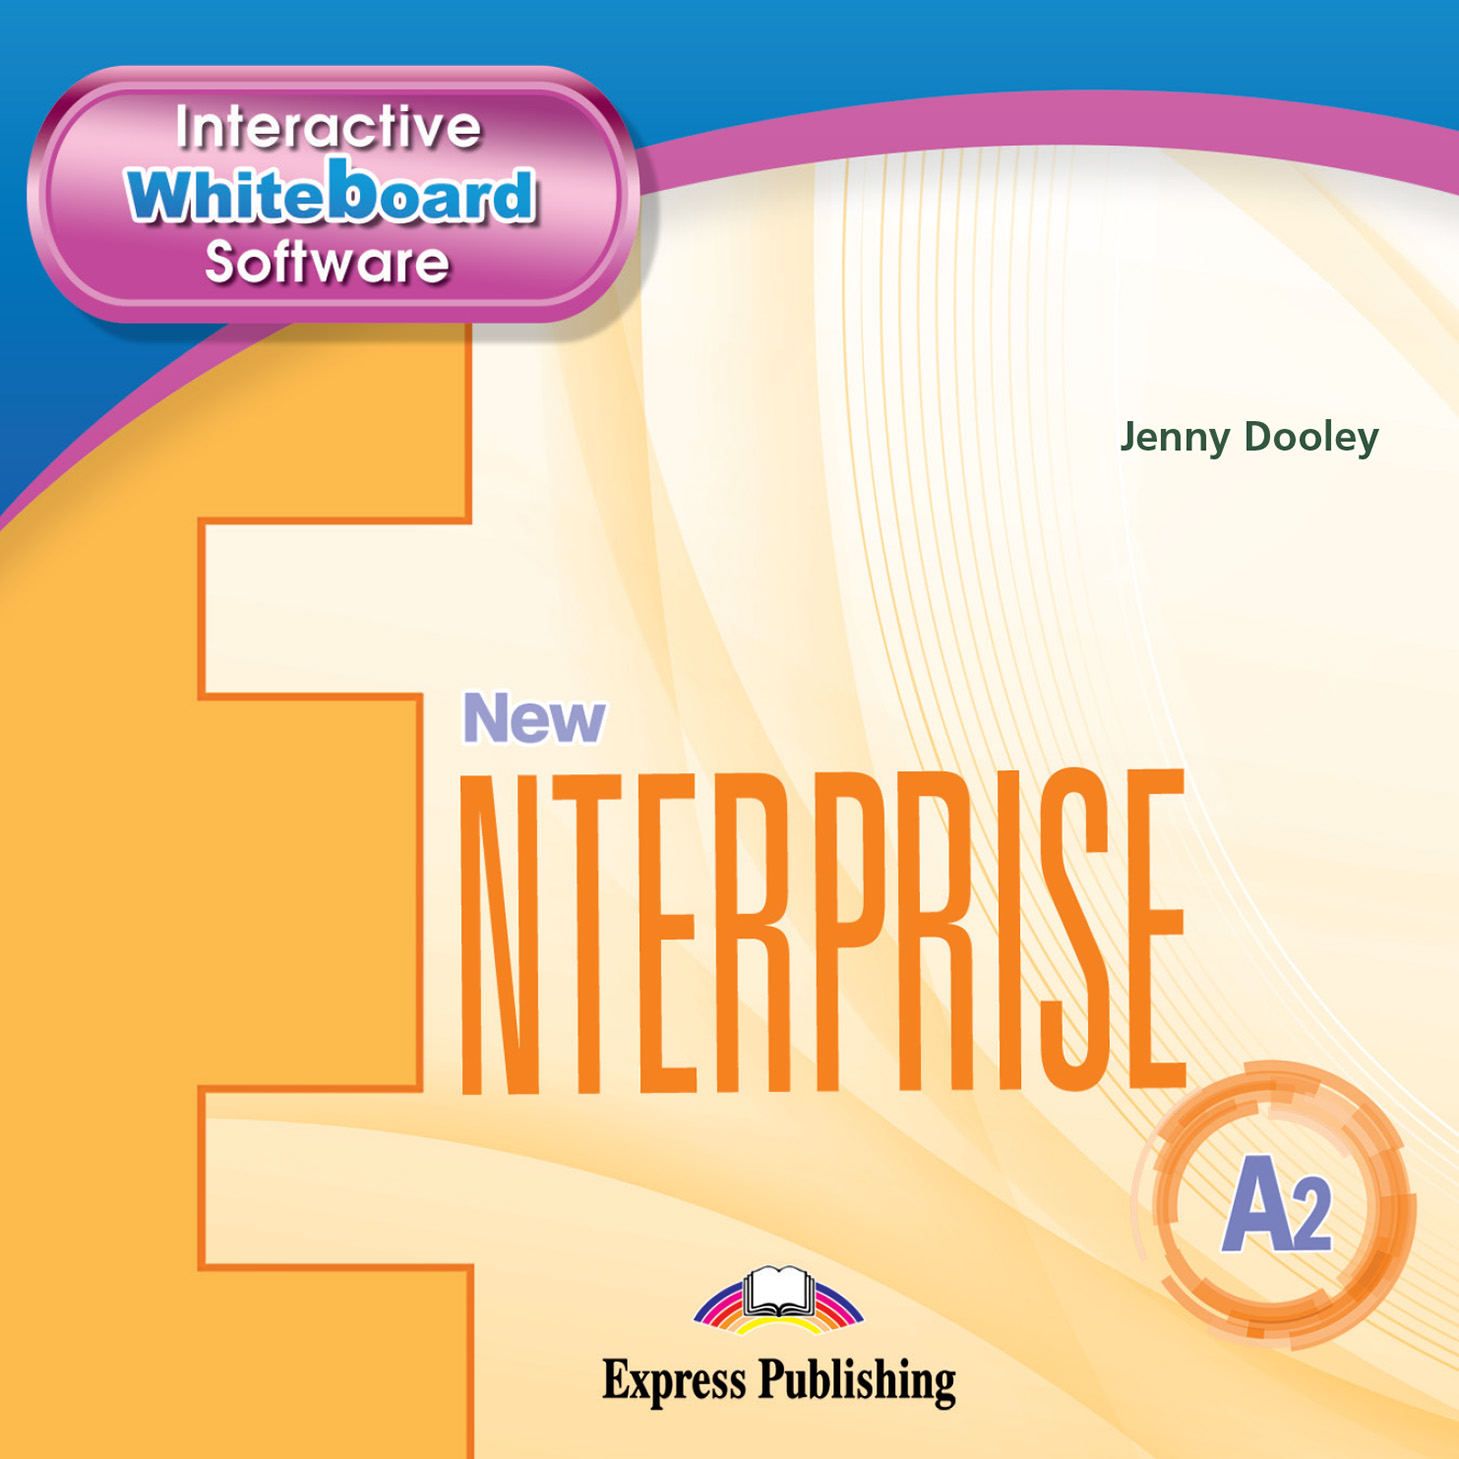 New Enterprise A2 - Interactive Whiteboard Software